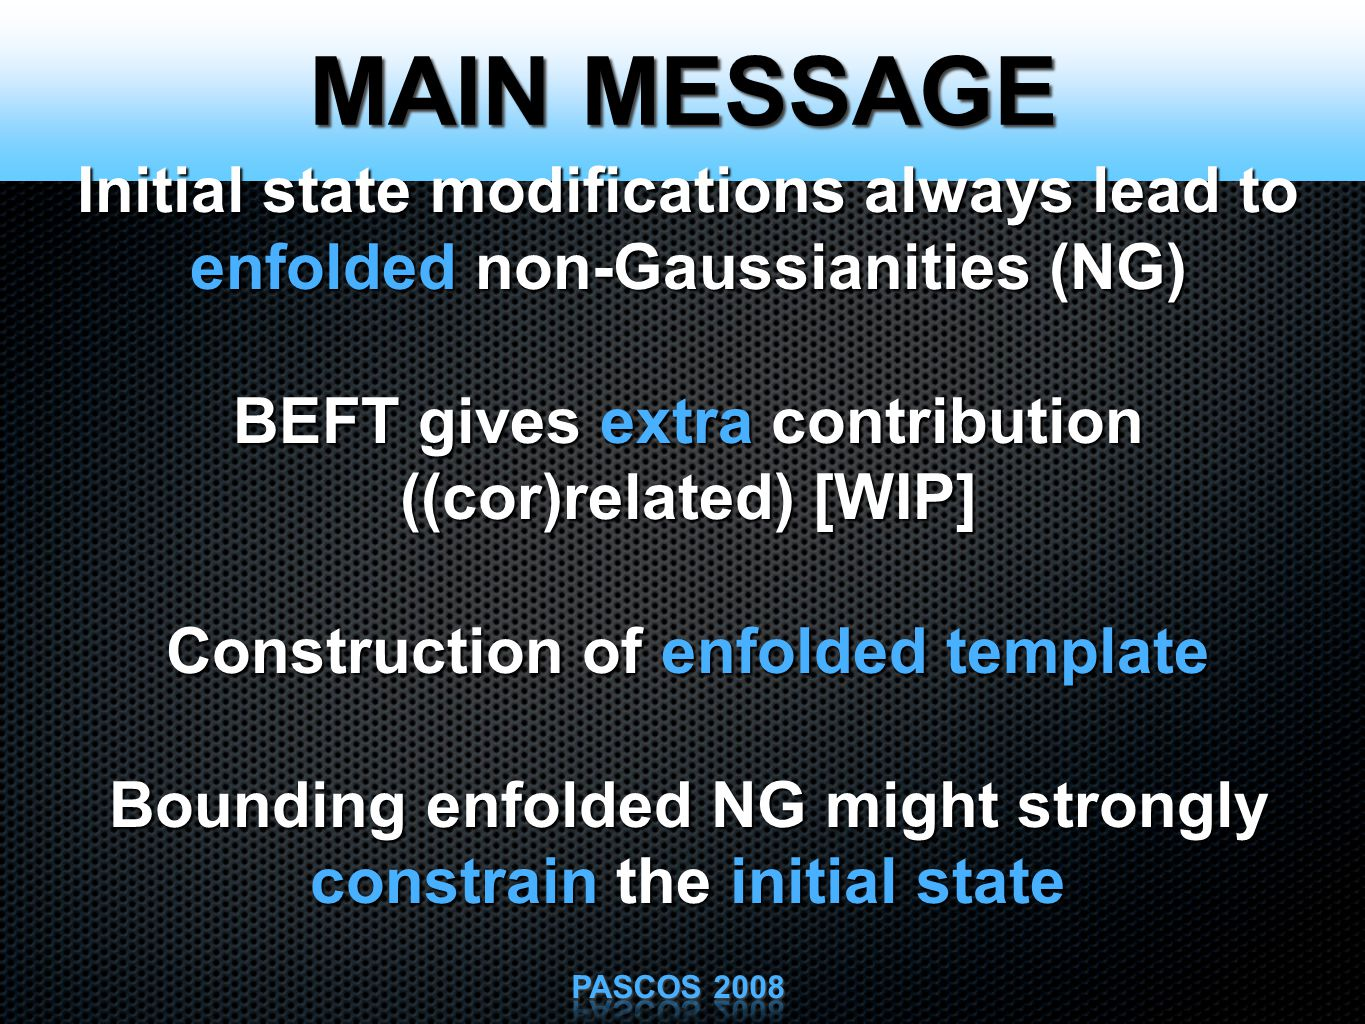 MAIN MESSAGE Initial state modifications always lead to enfolded non-Gaussianities (NG) BEFT gives extra contribution ((cor)related) [WIP] Construction of enfolded template Bounding enfolded NG might strongly constrain the initial state